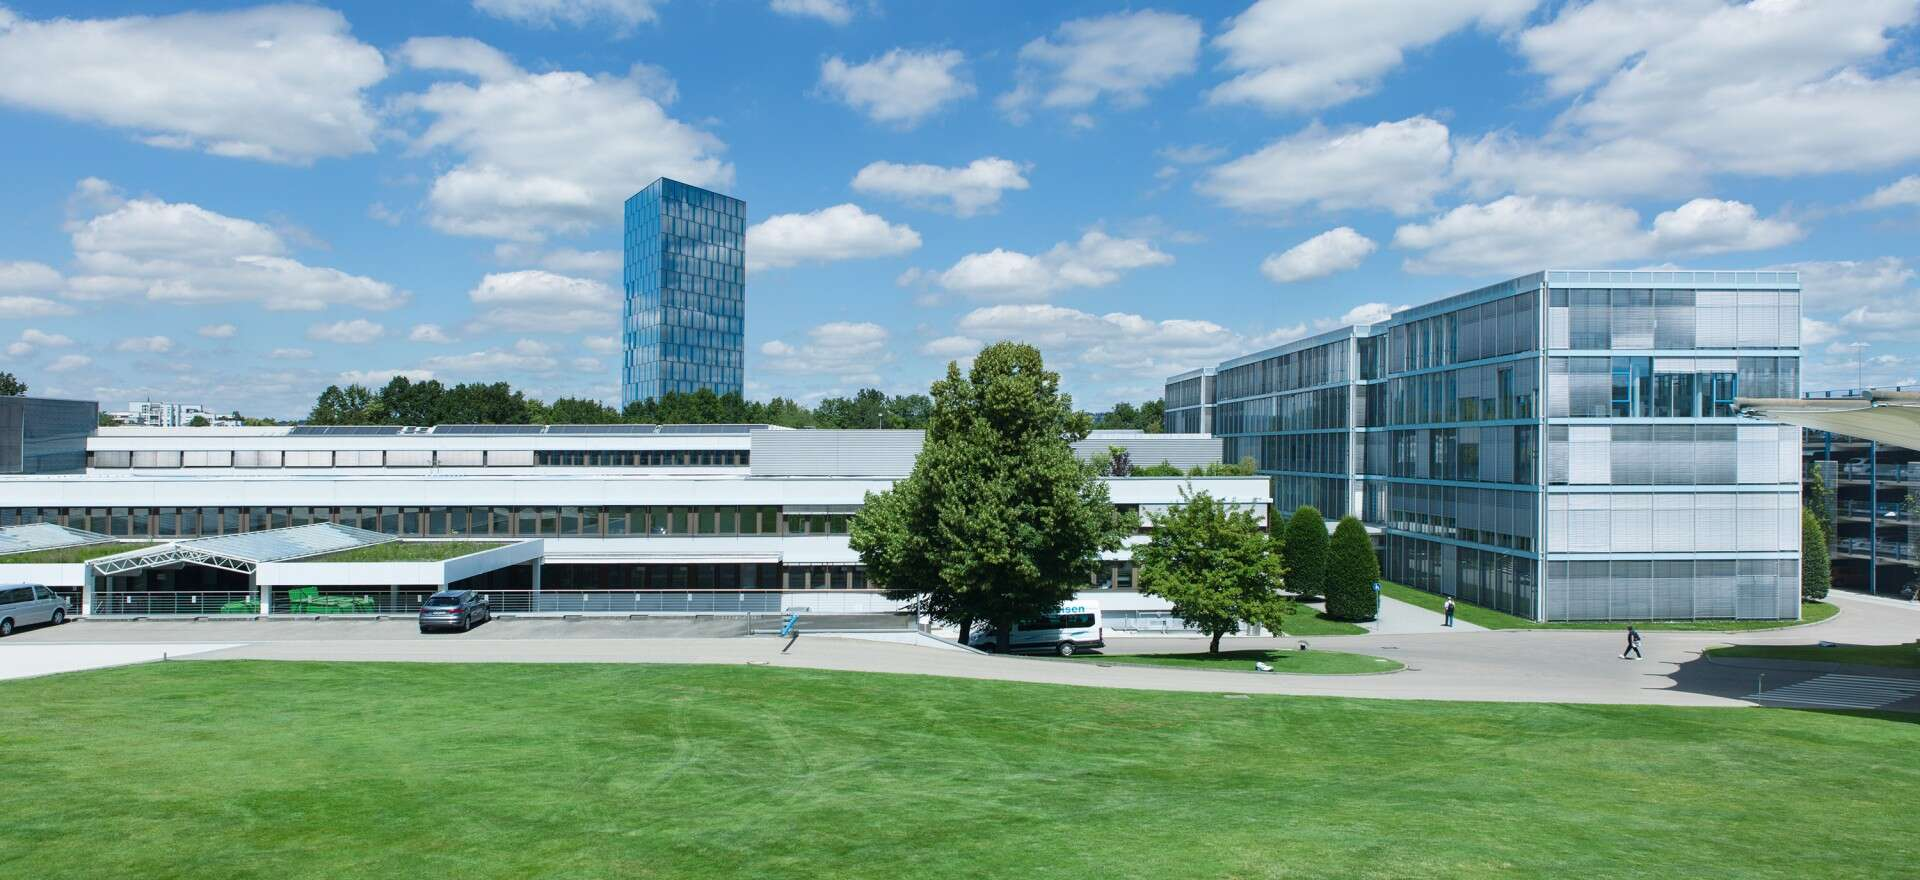 Headquarters and AutomationCenter at Festo's corporate head office in Esslingen-Berkheim, Germany